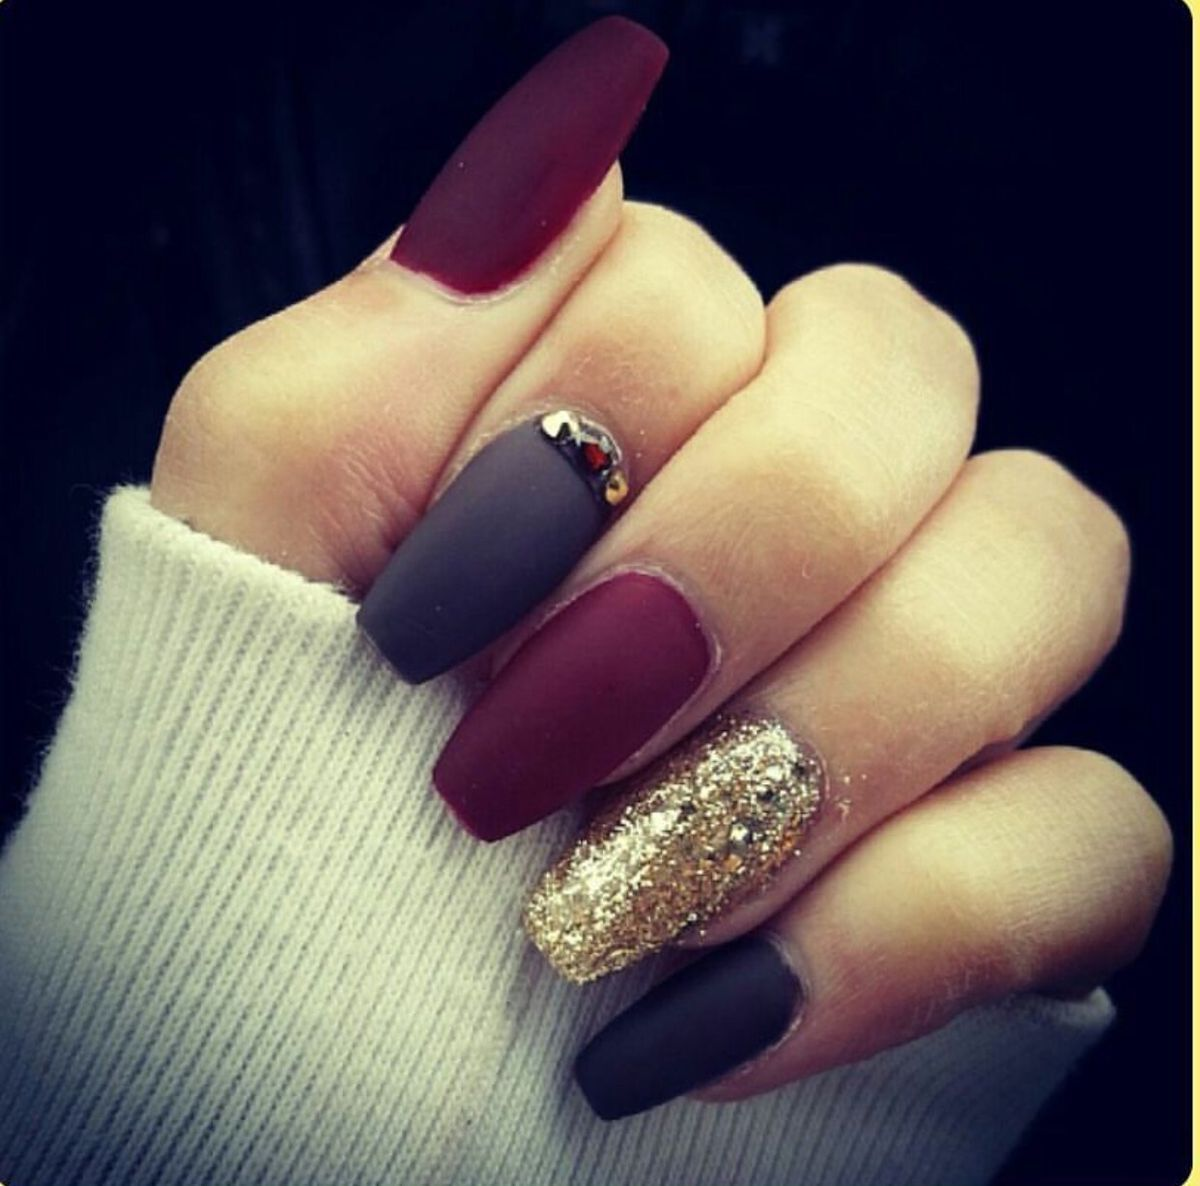 Pin by Chris B on Nuxia   Pinterest   Makeup, Nail color designs and ...